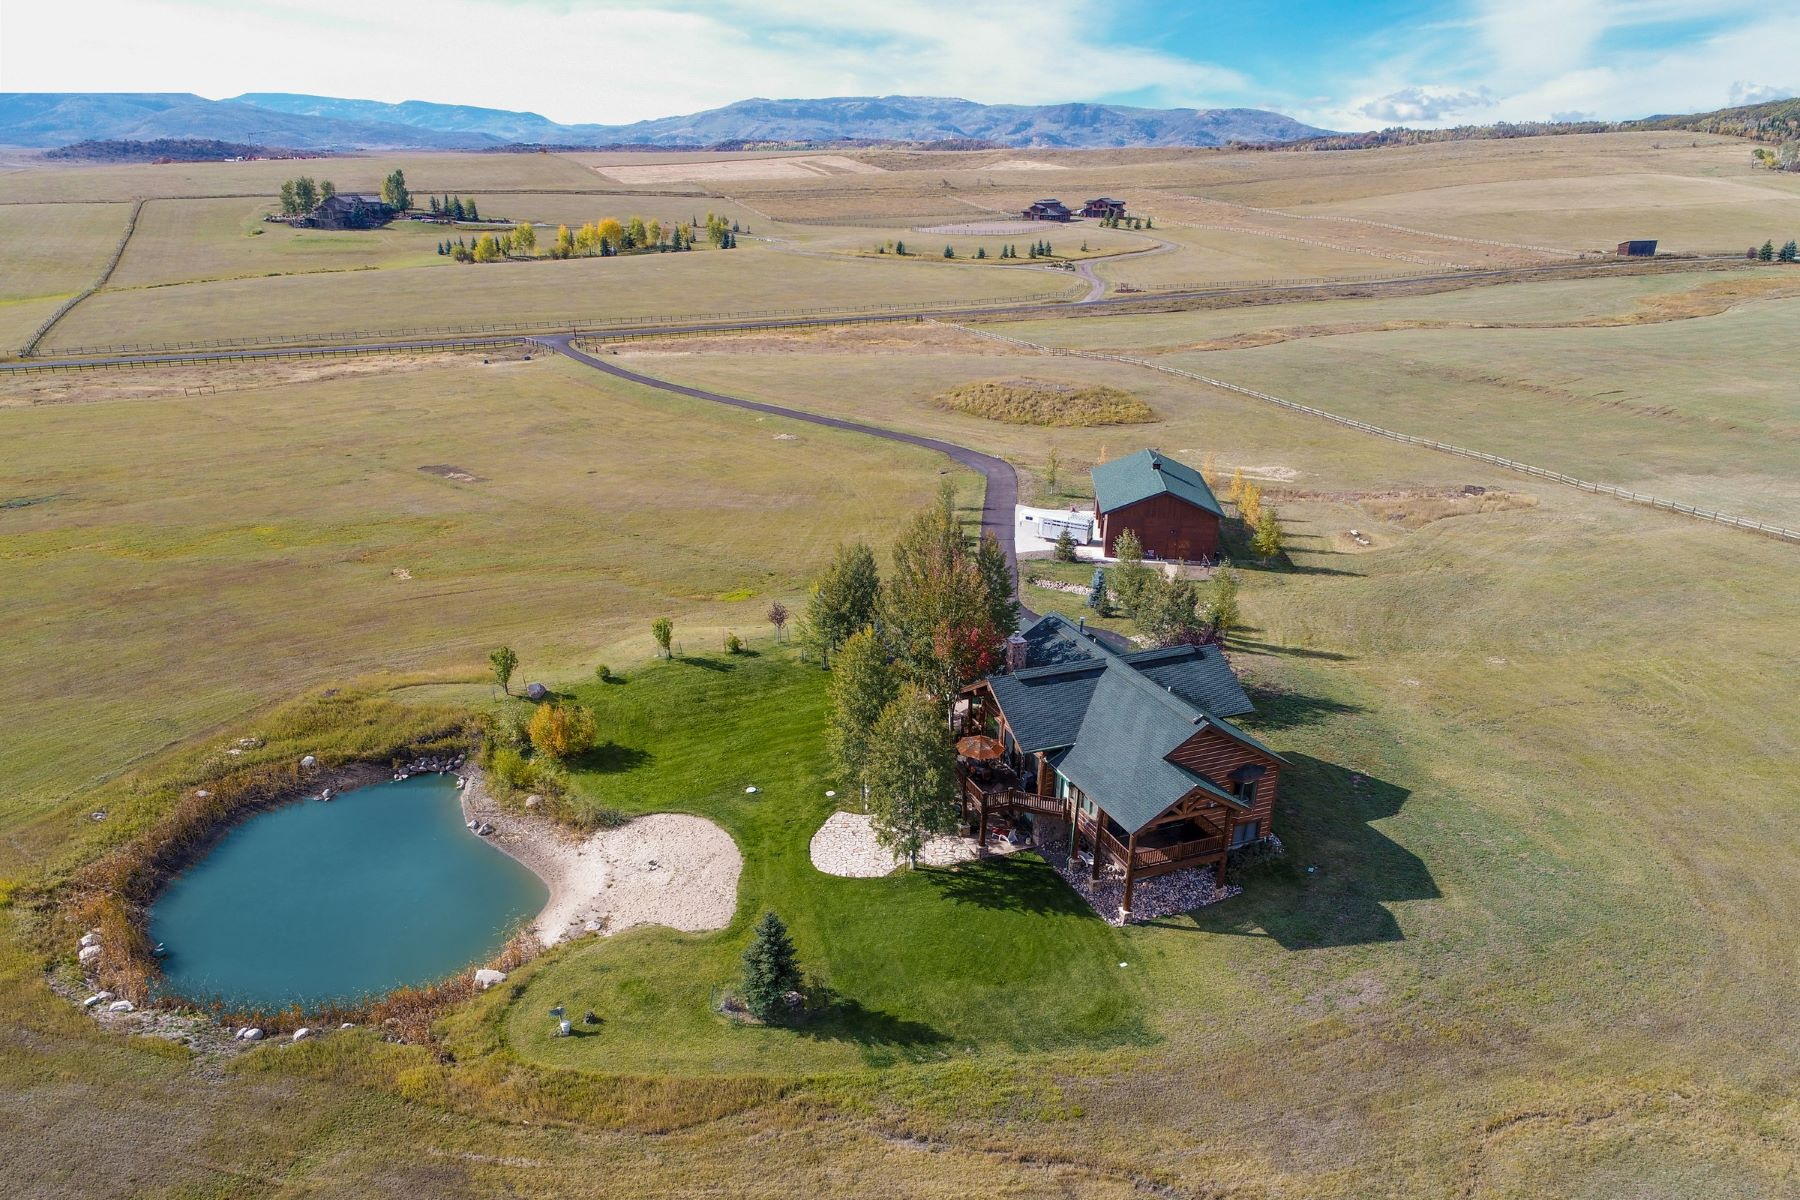 Single Family Home for Sale at Emerald Meadows Home with Stunning Views 33355 Emerald Meadows Drive, South Valley, Steamboat Springs, Colorado, 80477 United States